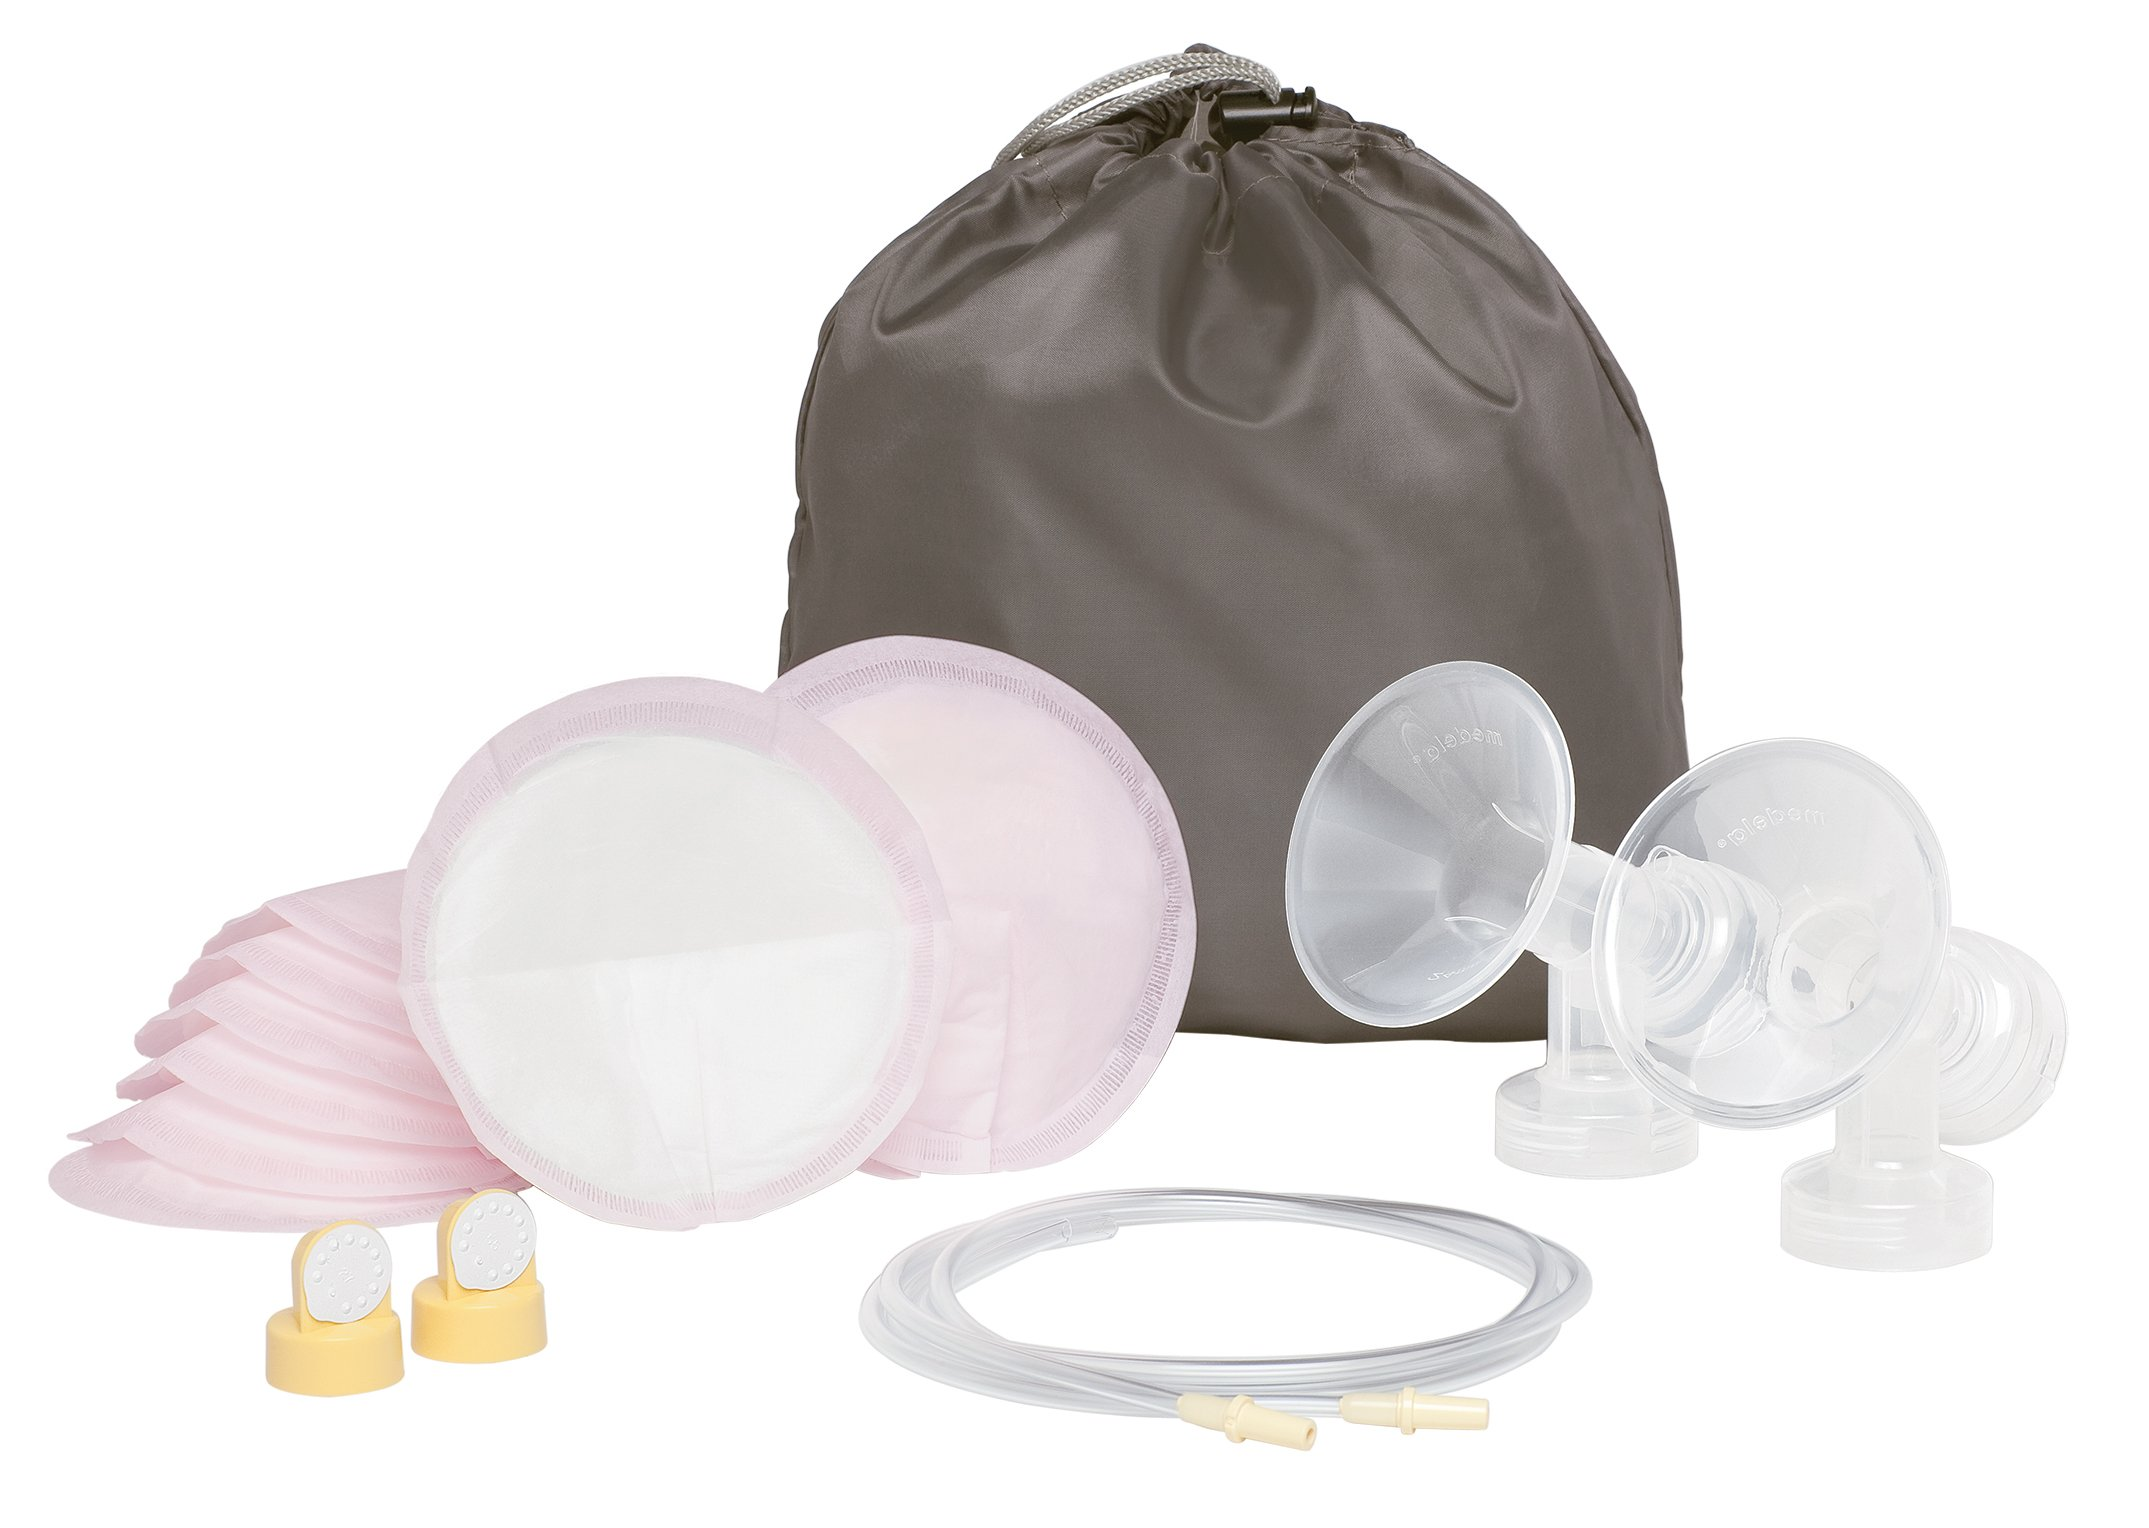 Medela Pump in Style Advanced Double Pumping Kit with Authentic Medela Spare Parts, Includes Breast Shields, Connectors, and Accessory Bag, Made Without BPA by Medela